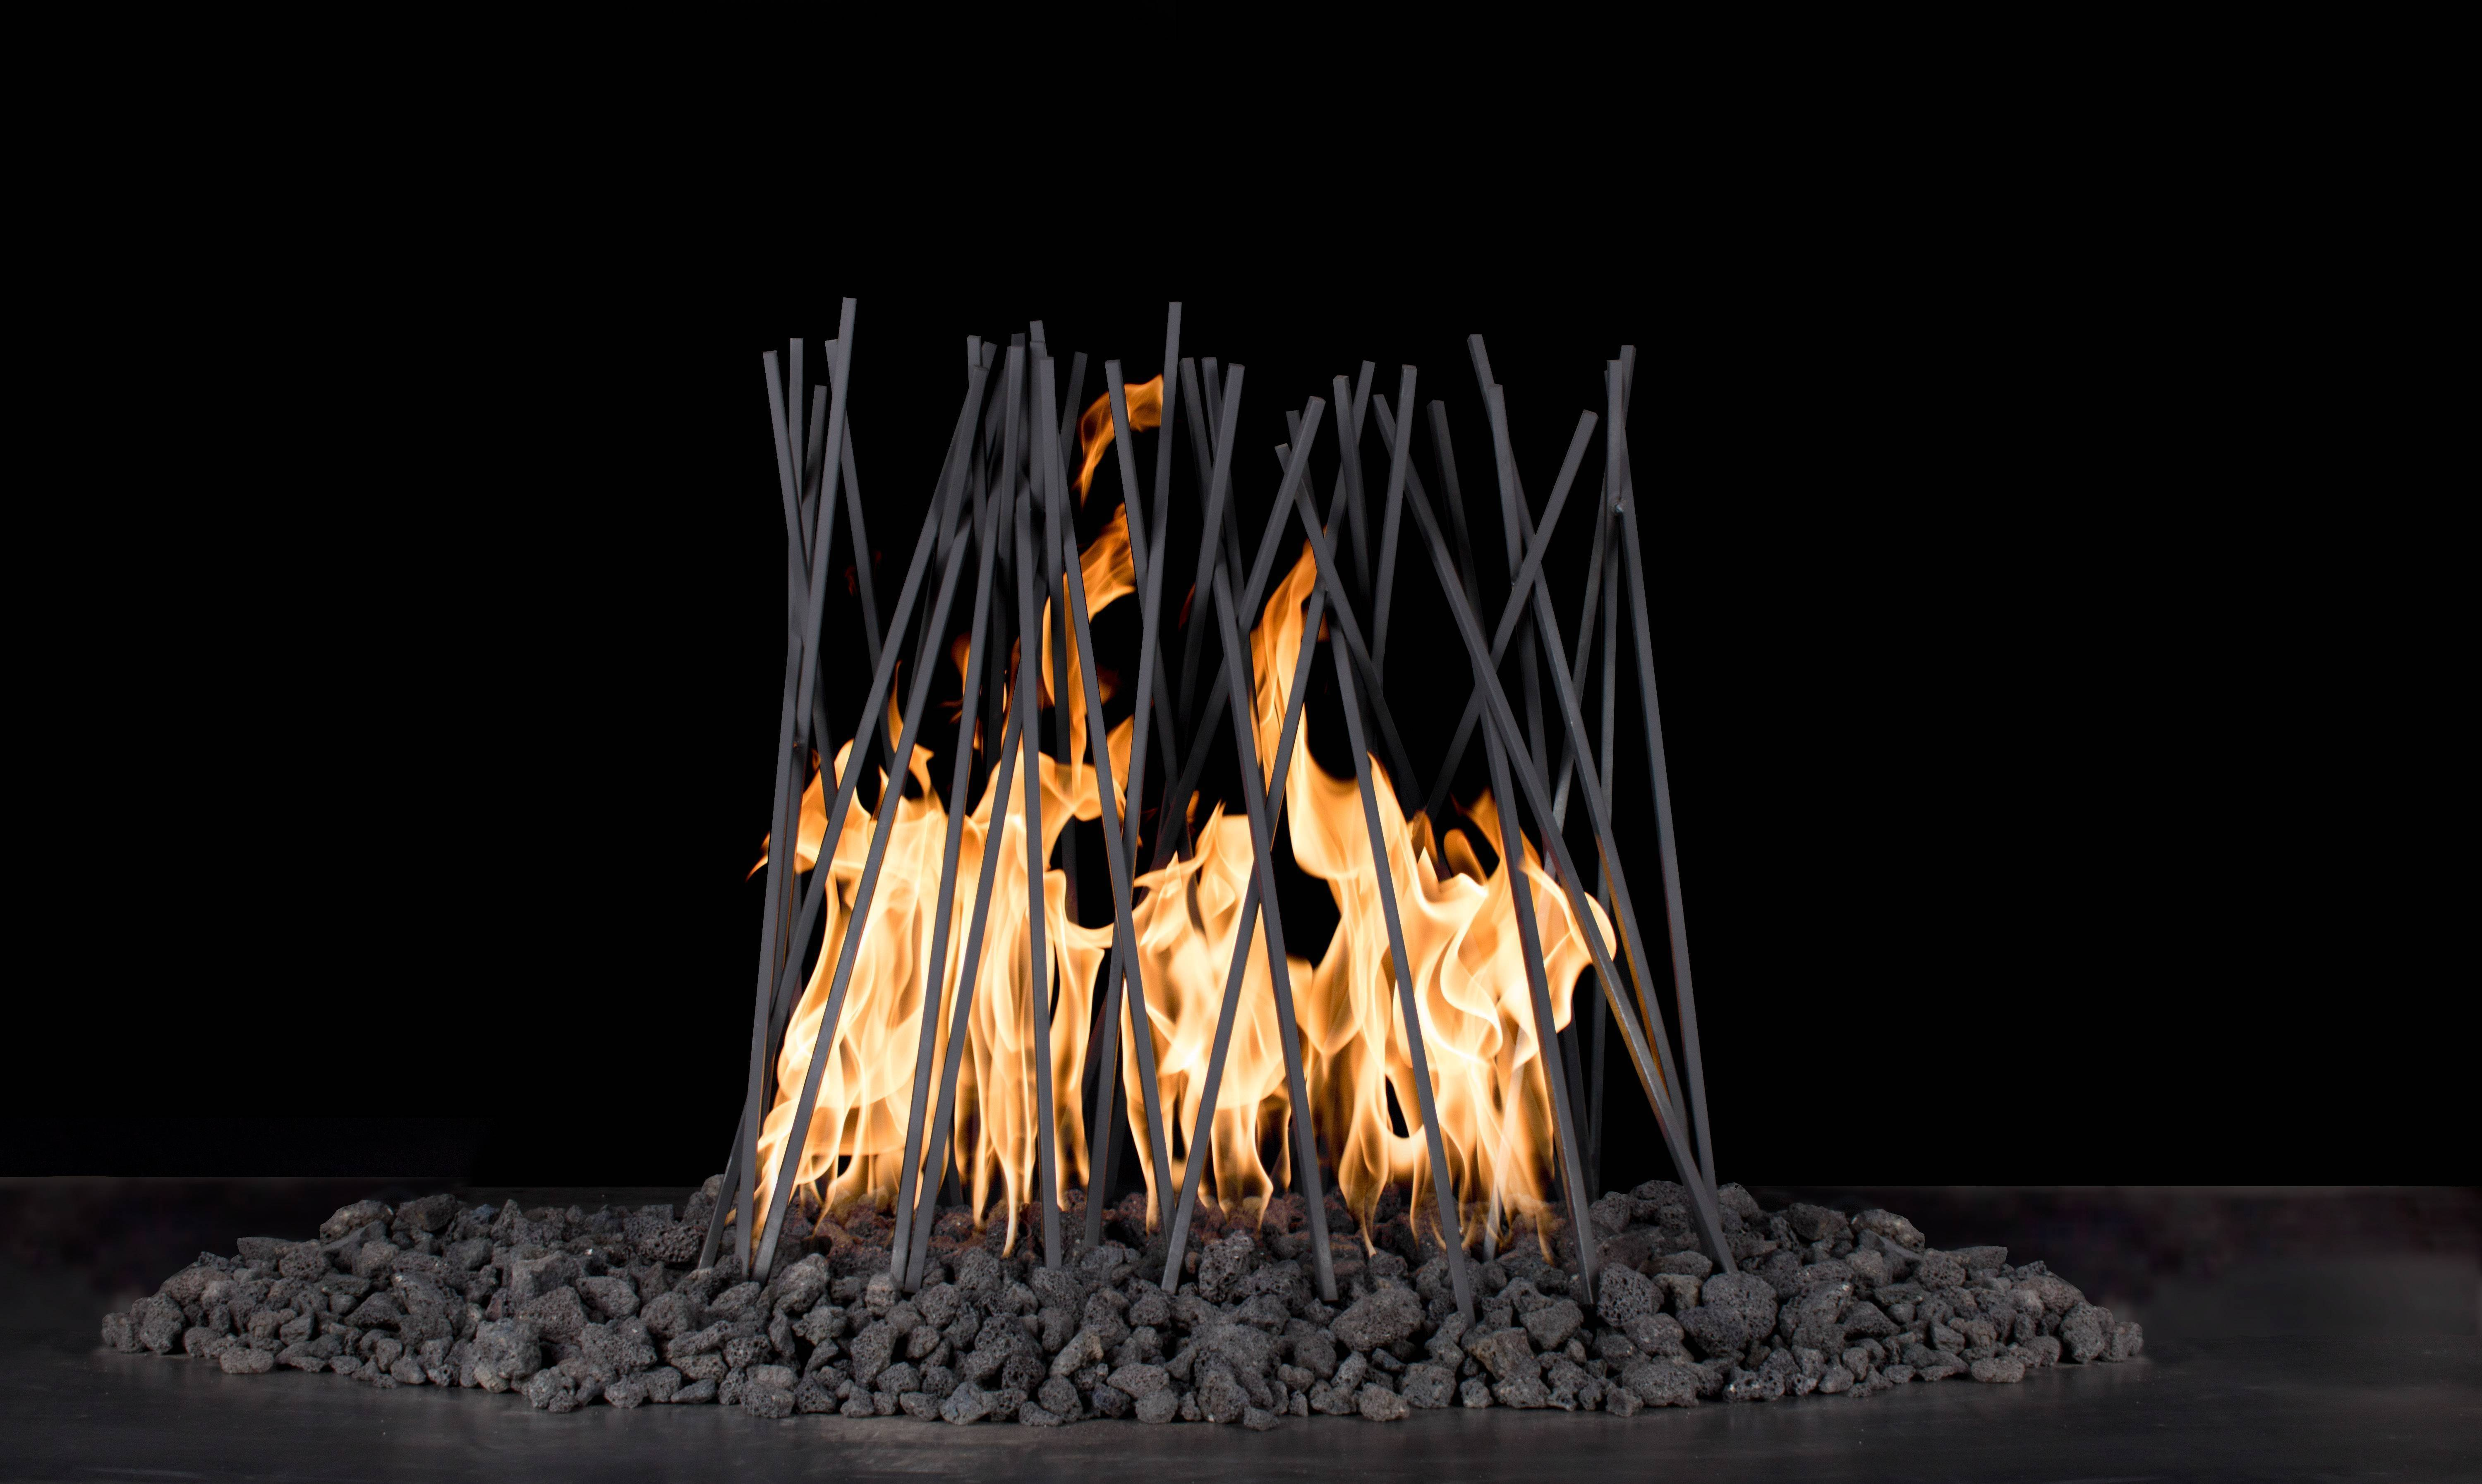 "Milled 1/4"" Steel Fire Twigs - Sets Over Existing Burner 